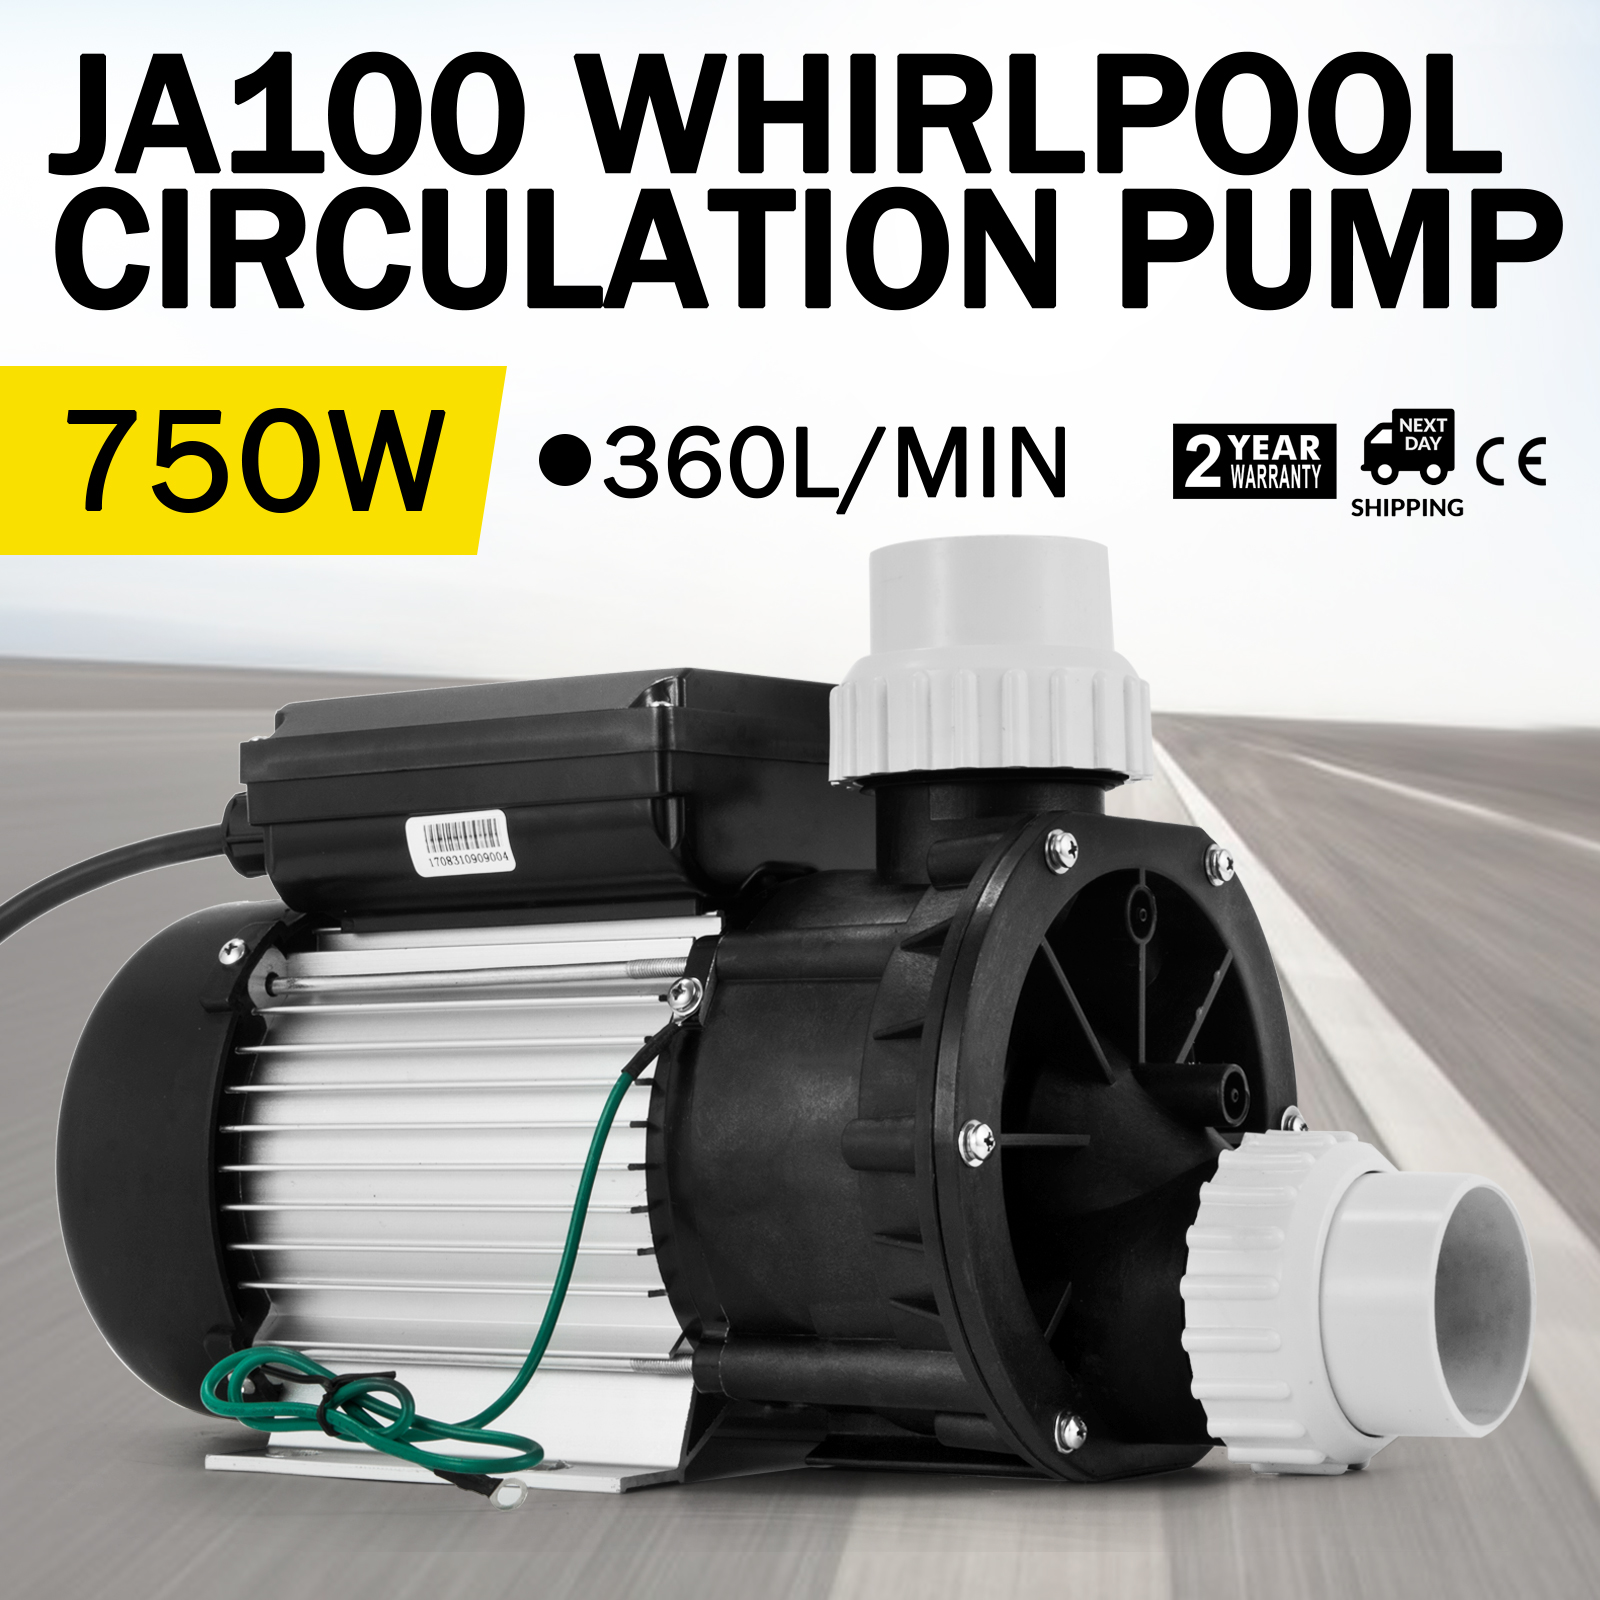 LX JA100 Whirlpool Pumpe Umwälzpumpe Hot Tub Powerful Durable Jetpumpe  360L/MIN